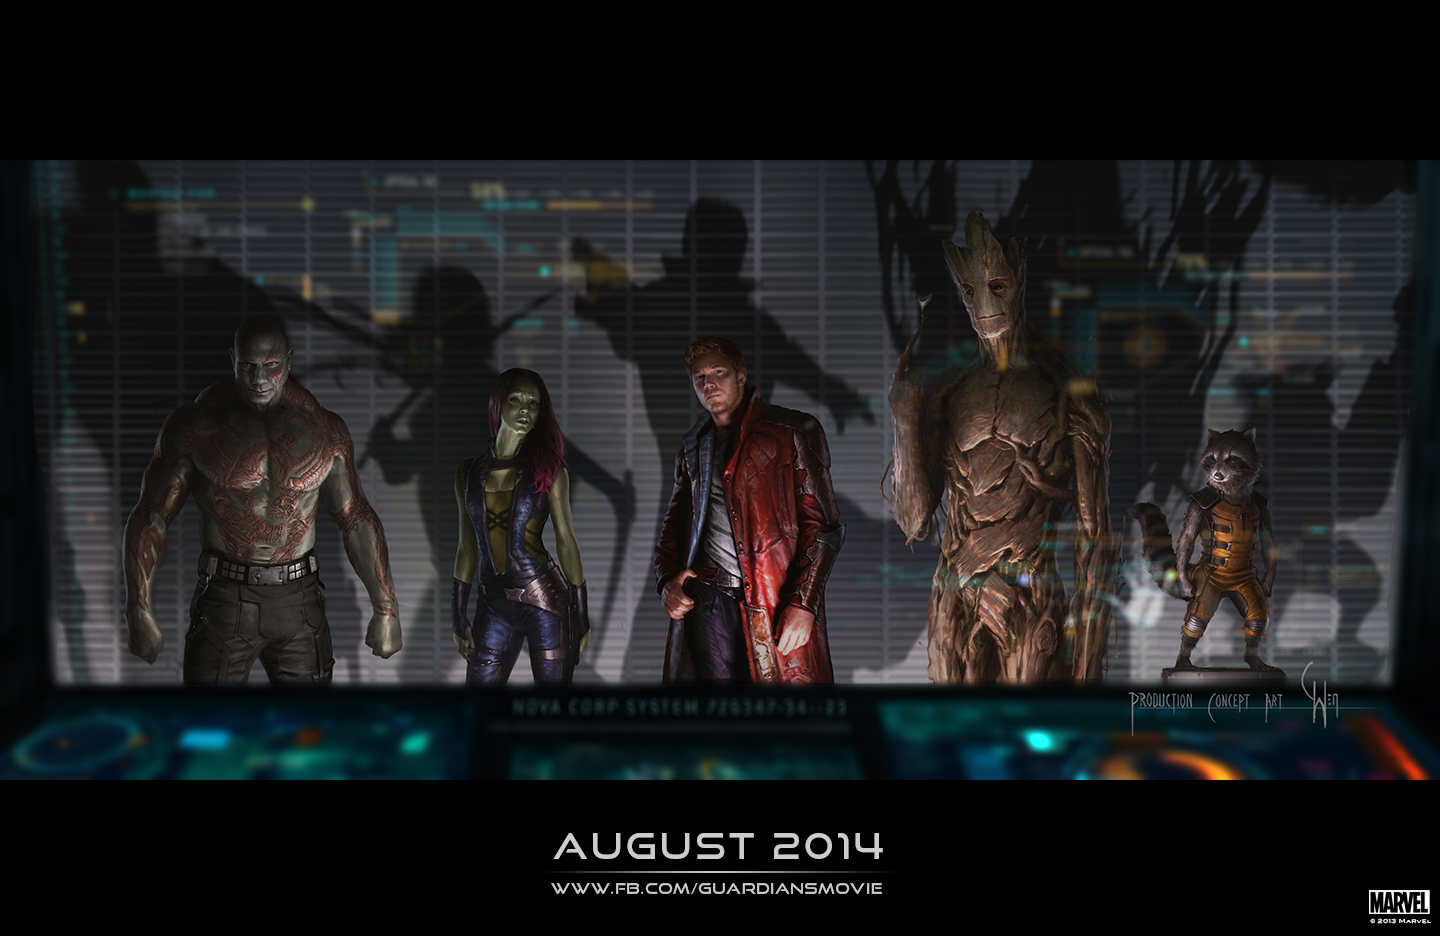 http://fc05.deviantart.net/fs71/f/2013/201/a/c/guardians_of_the_galaxy_by_super_gamer-d6eet20.jpg